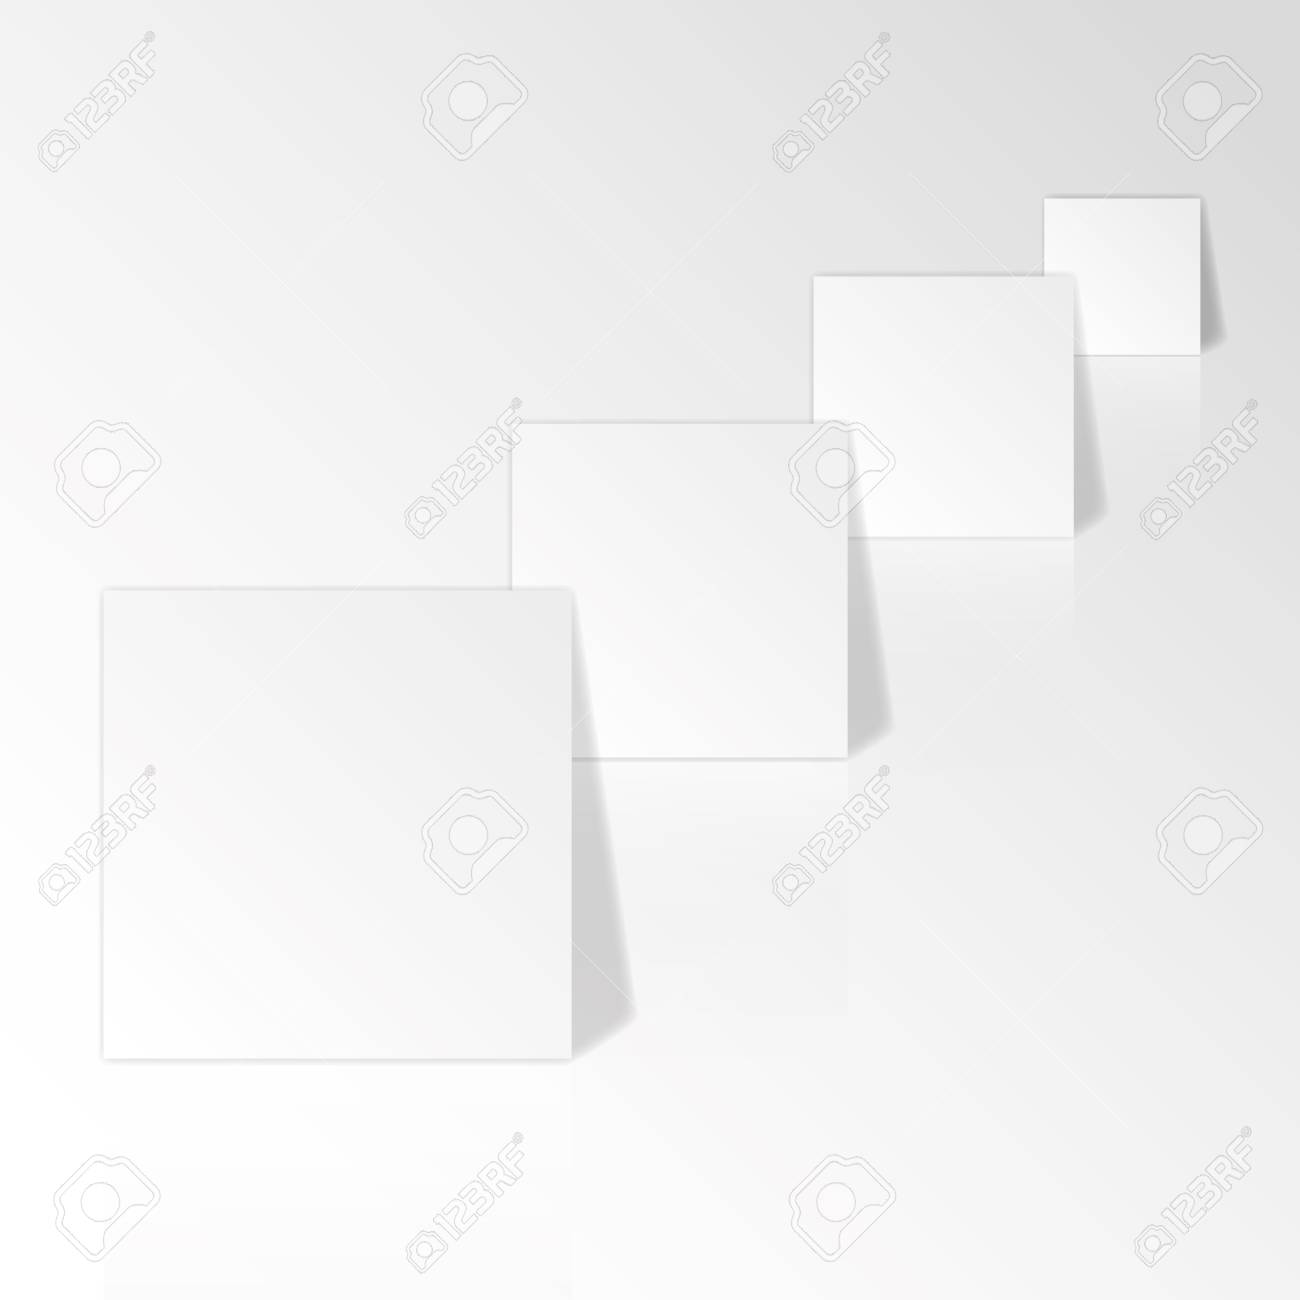 Blank paper patterns for work. Stock Vector - 11804286